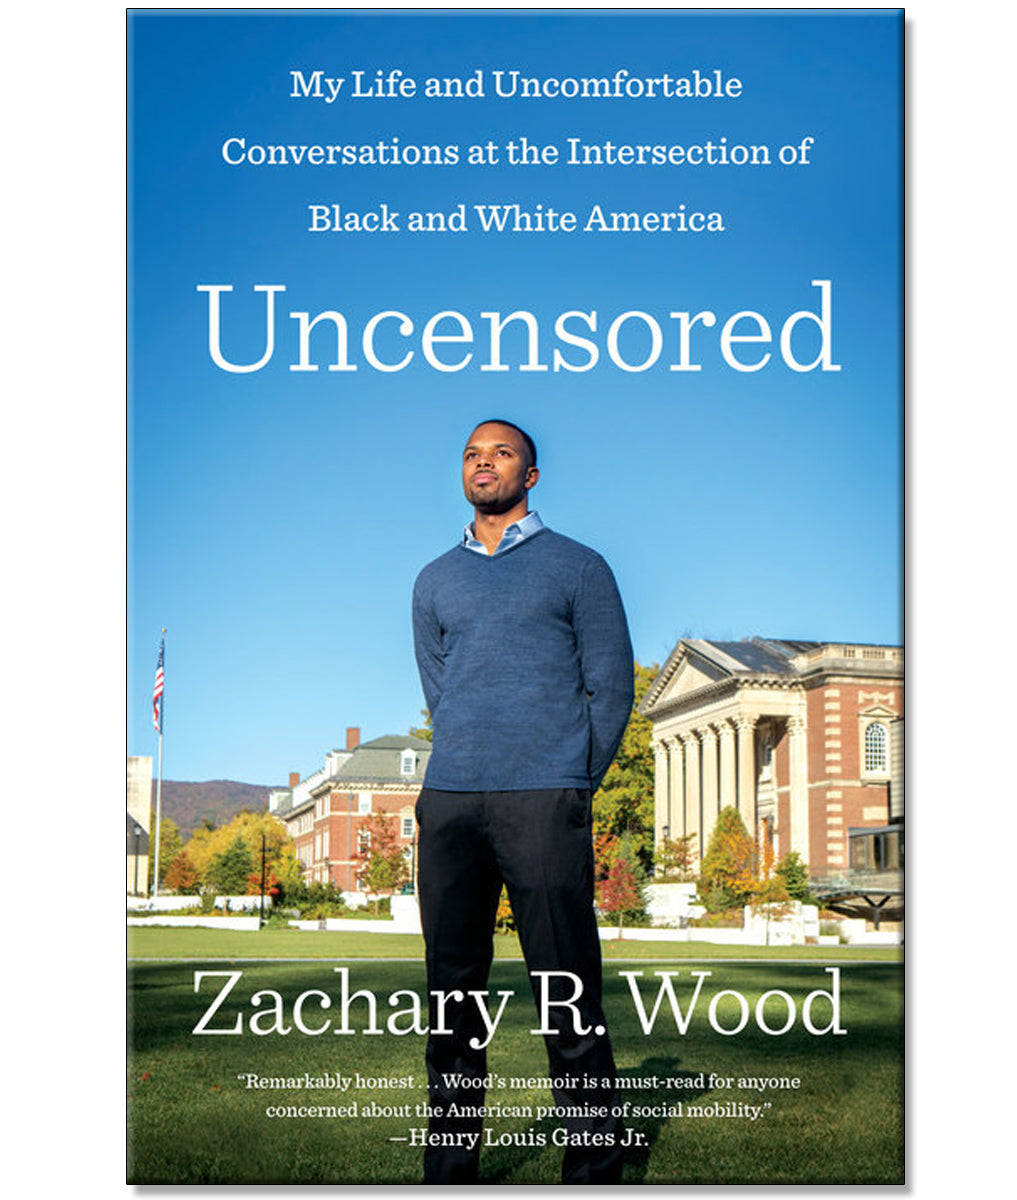 Uncensored by Zachary R. Wood